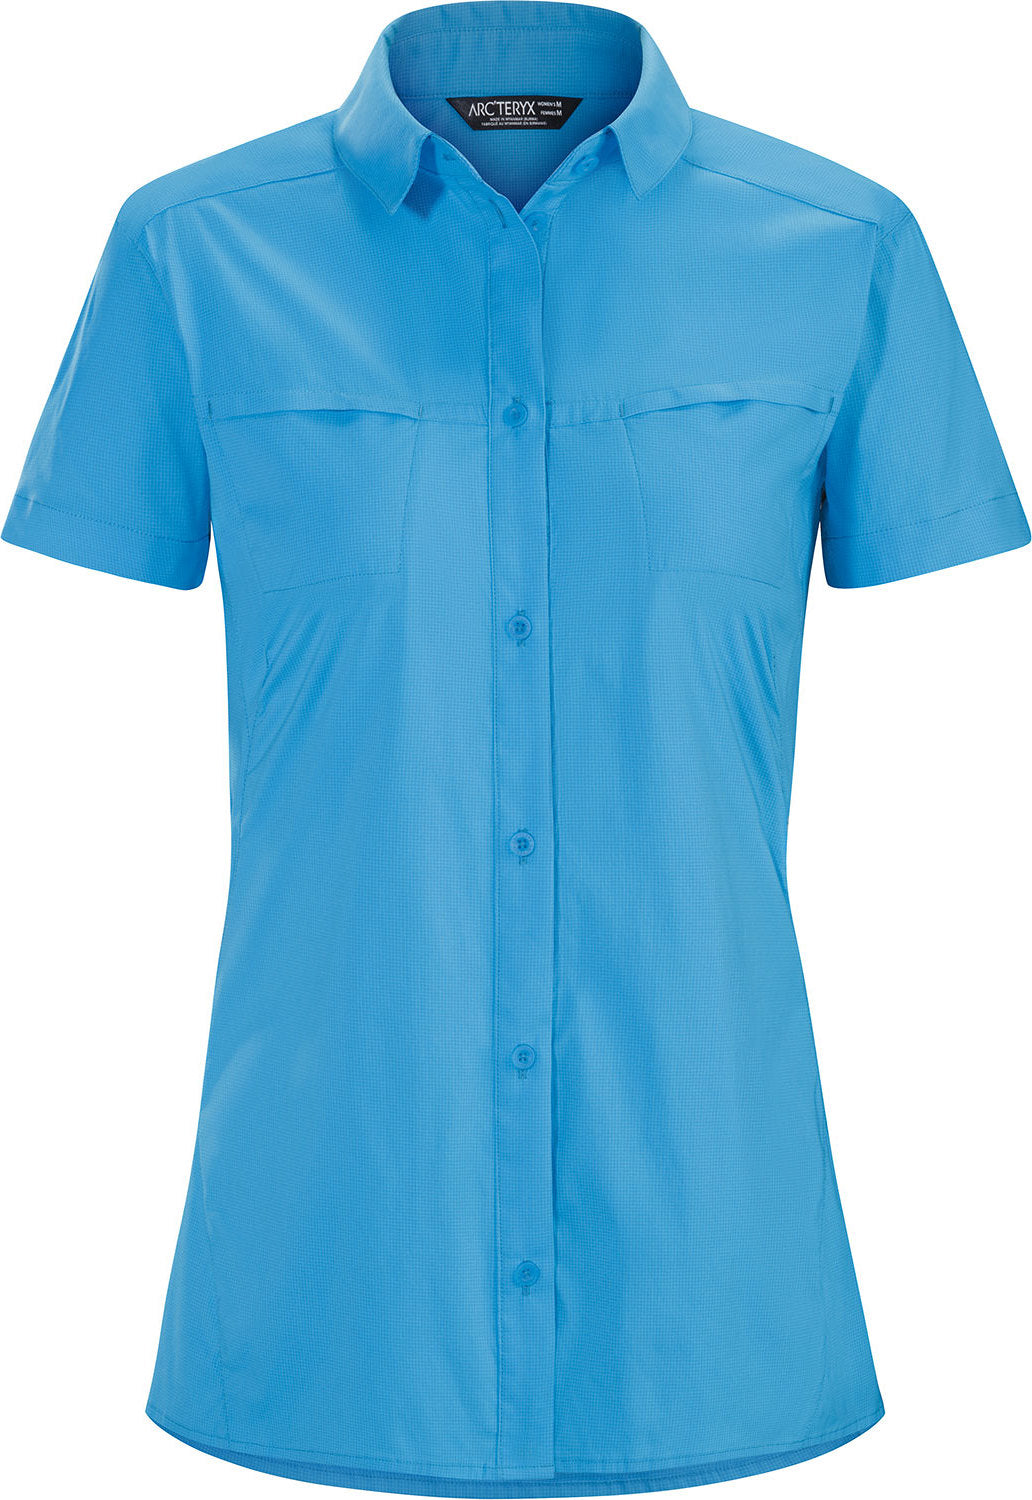 77c41a43746 Arc teryx Women s Fernie Short Sleeve Shirt